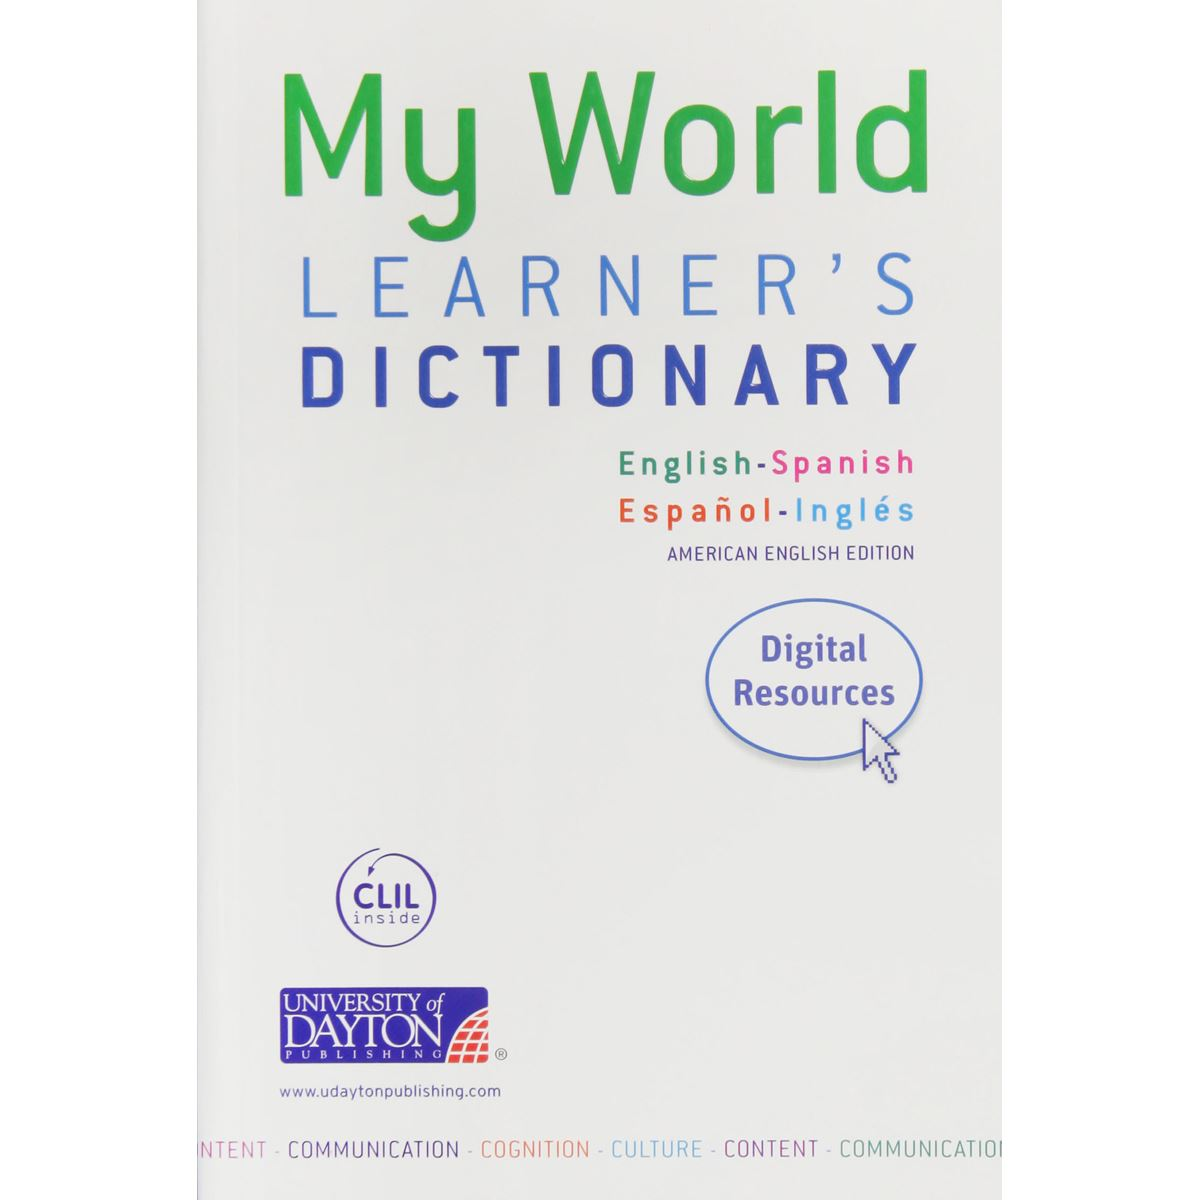 My World. LearnerS Dictionary